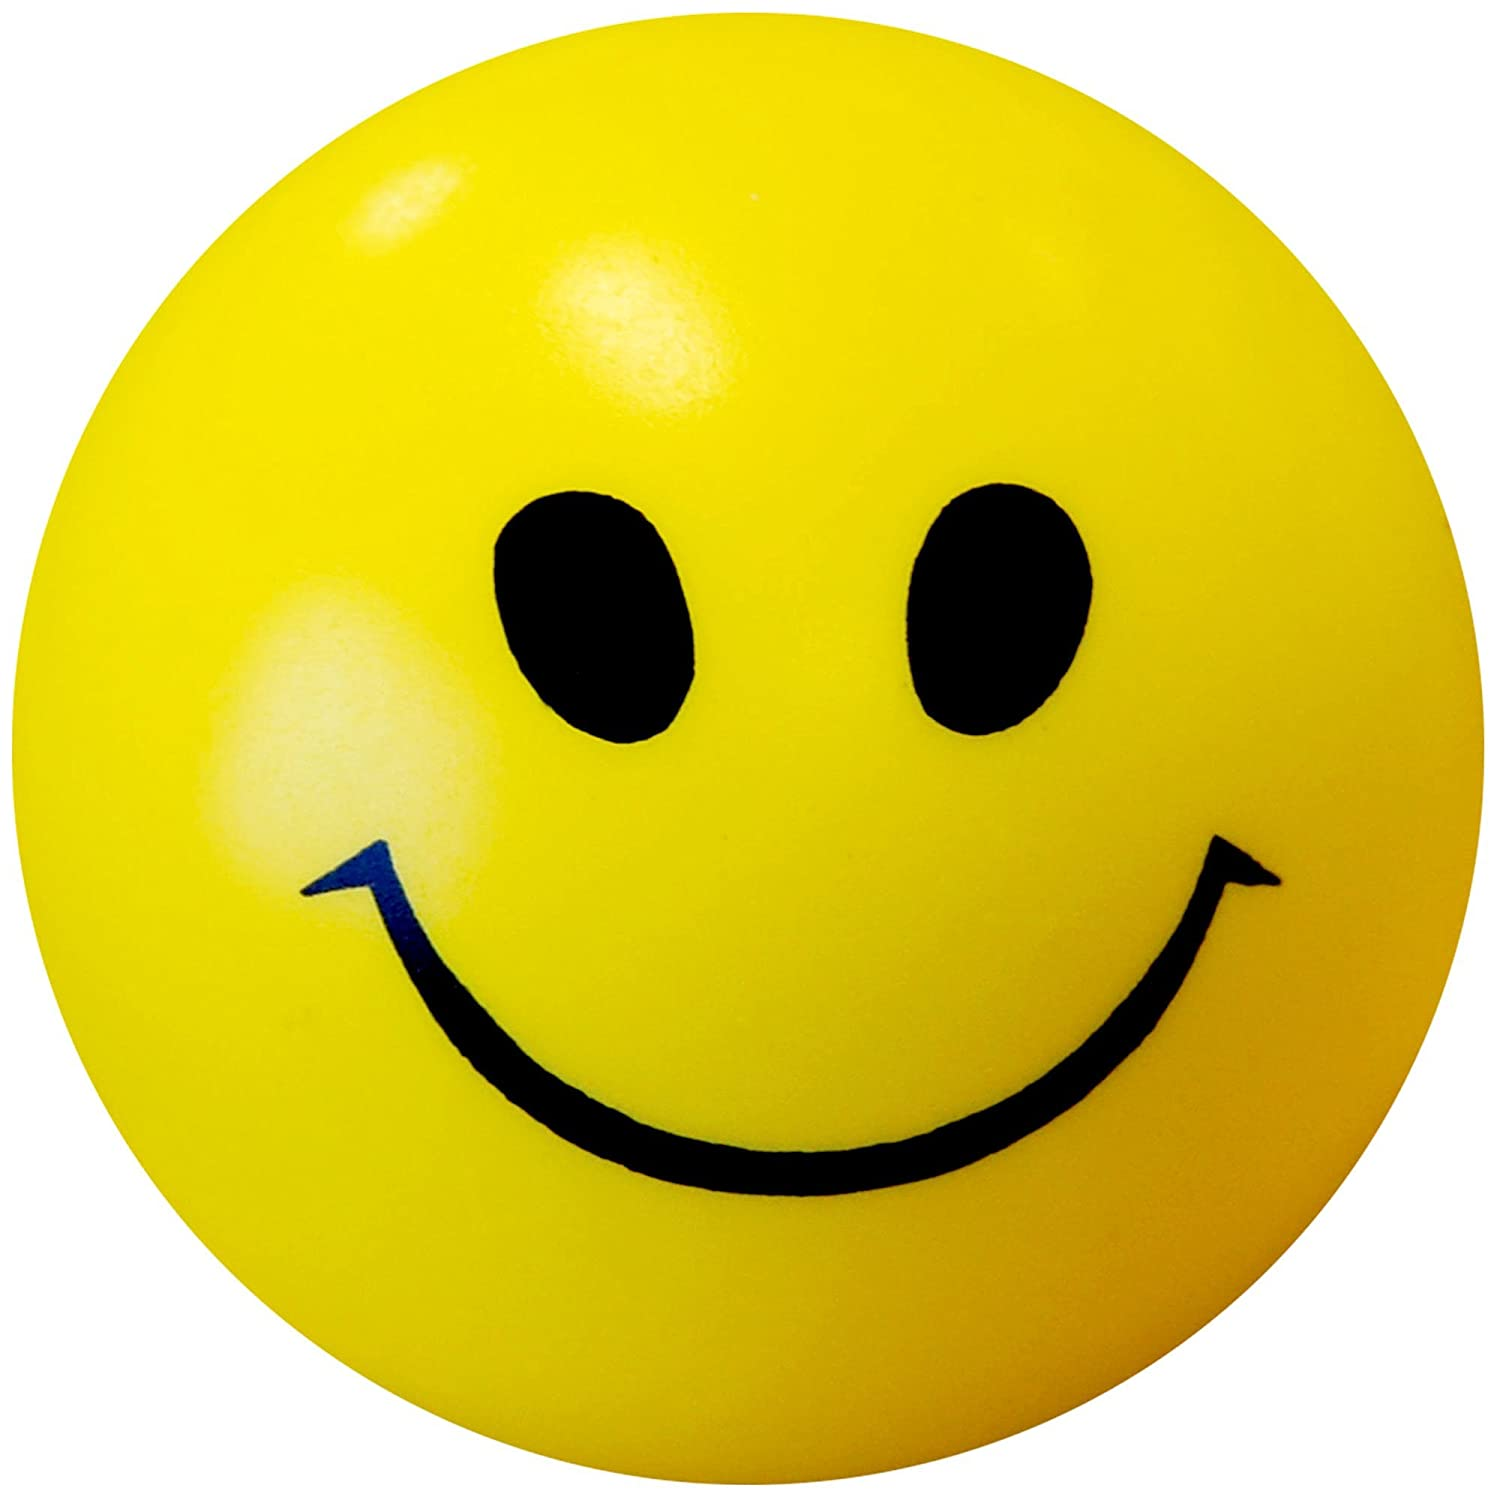 Buy Stress Reliver Smiley Ball Online At Low Prices In India   Amazon.in